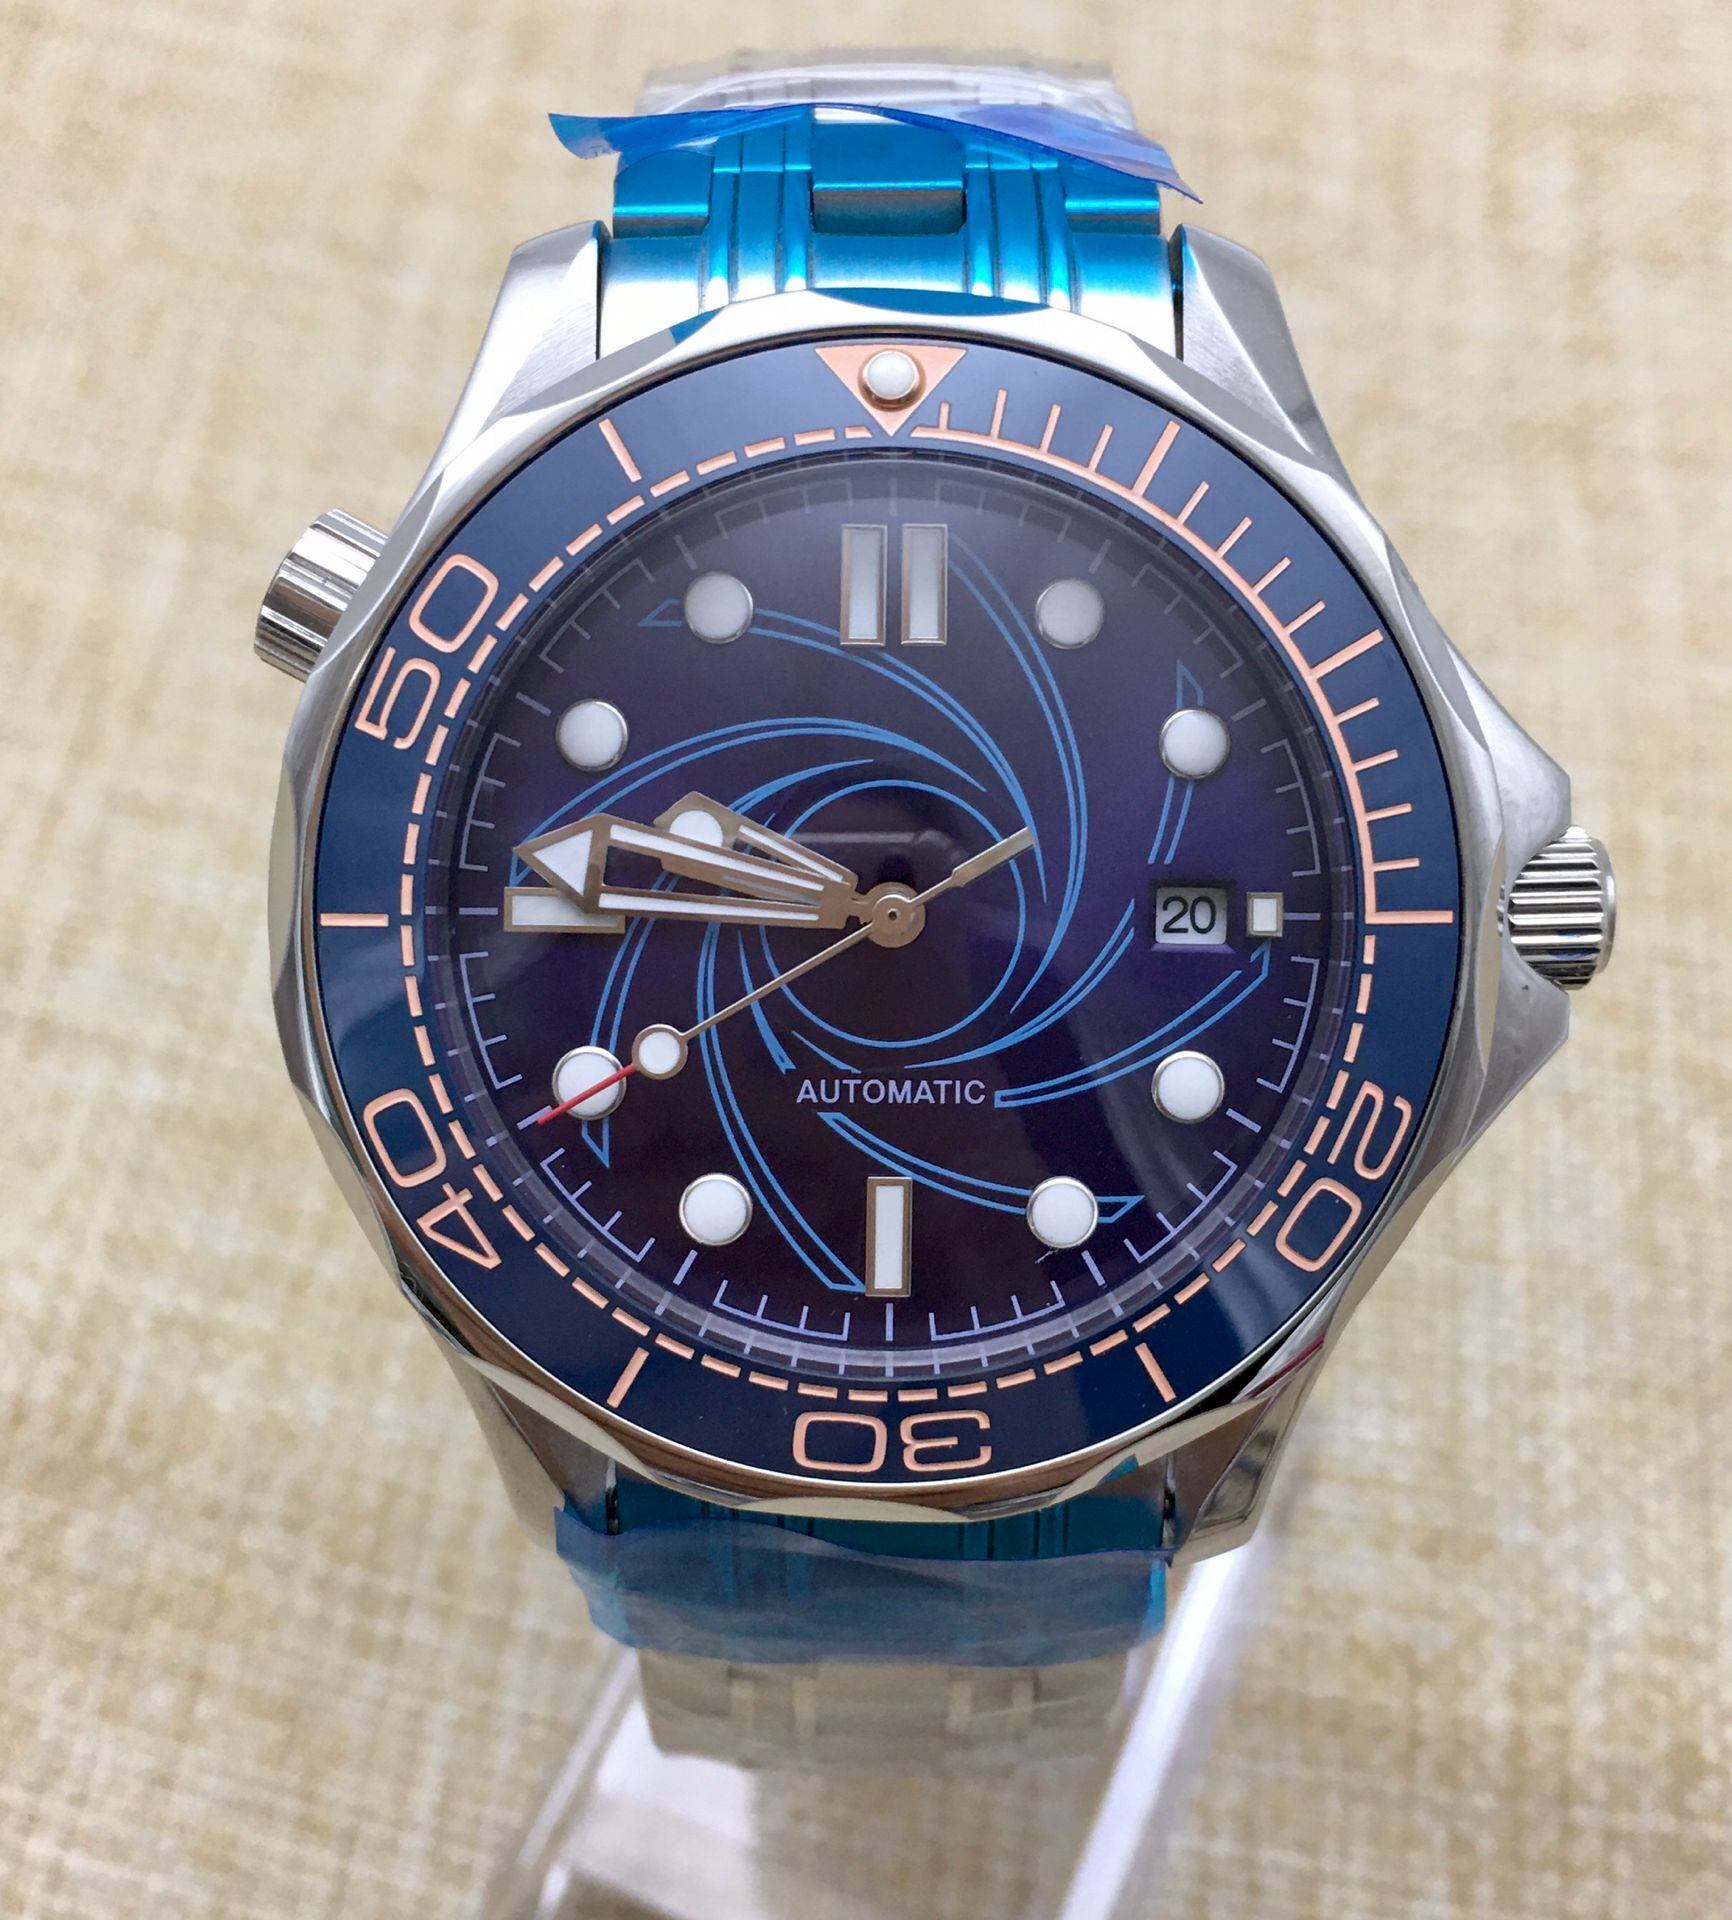 41MM Blue Dial Date Ceramic Bezel Stainless Steel Solid Case Automatic Watch Men's Mechanical Steel Strap 27 enlarge